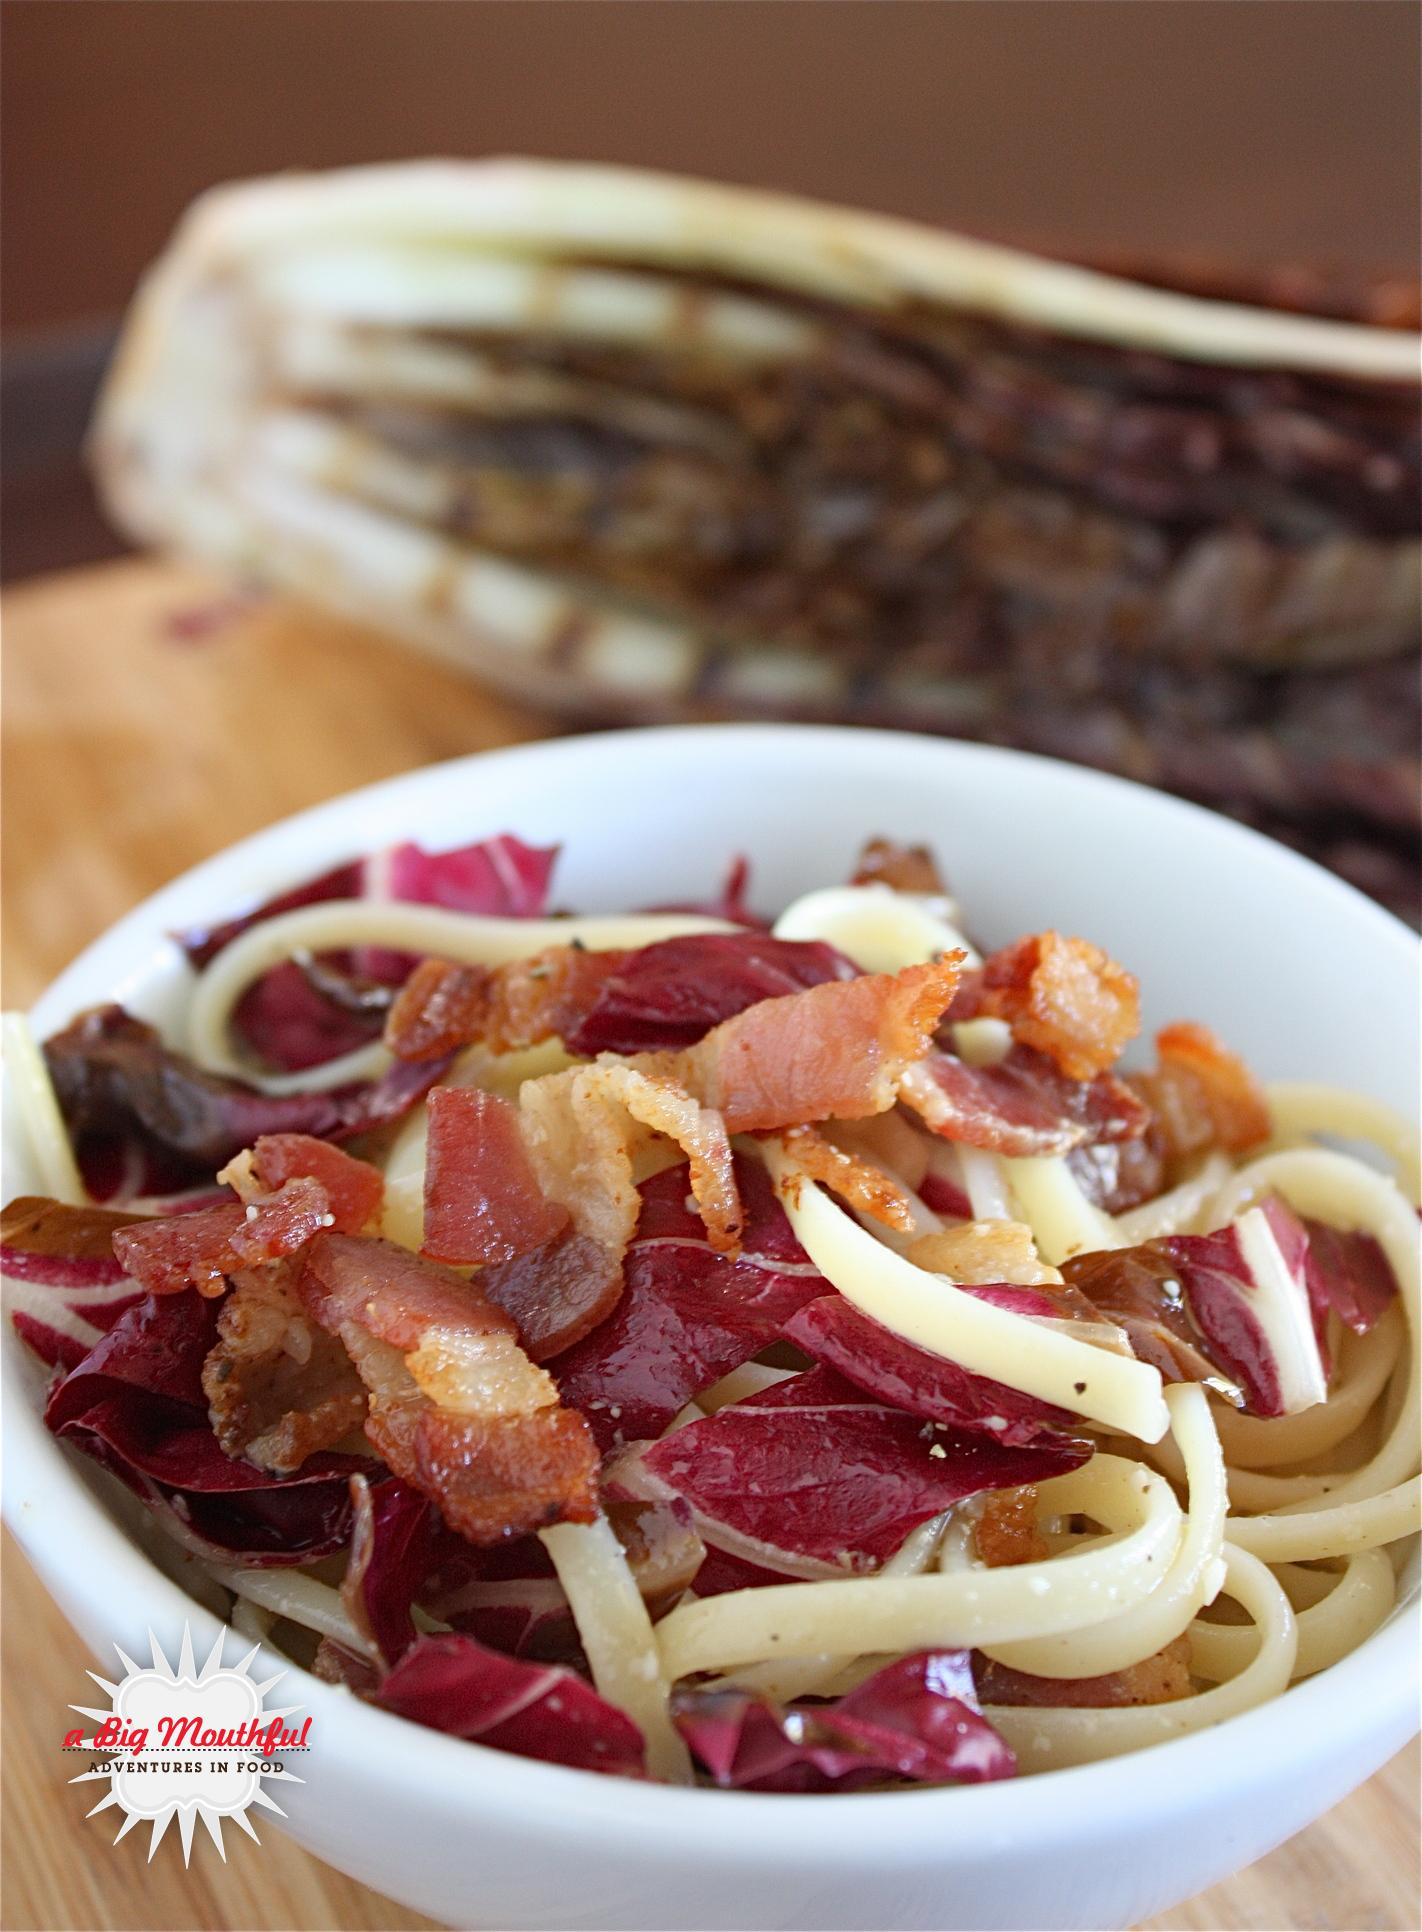 Linguine with Grilled Radicchio and Bacon